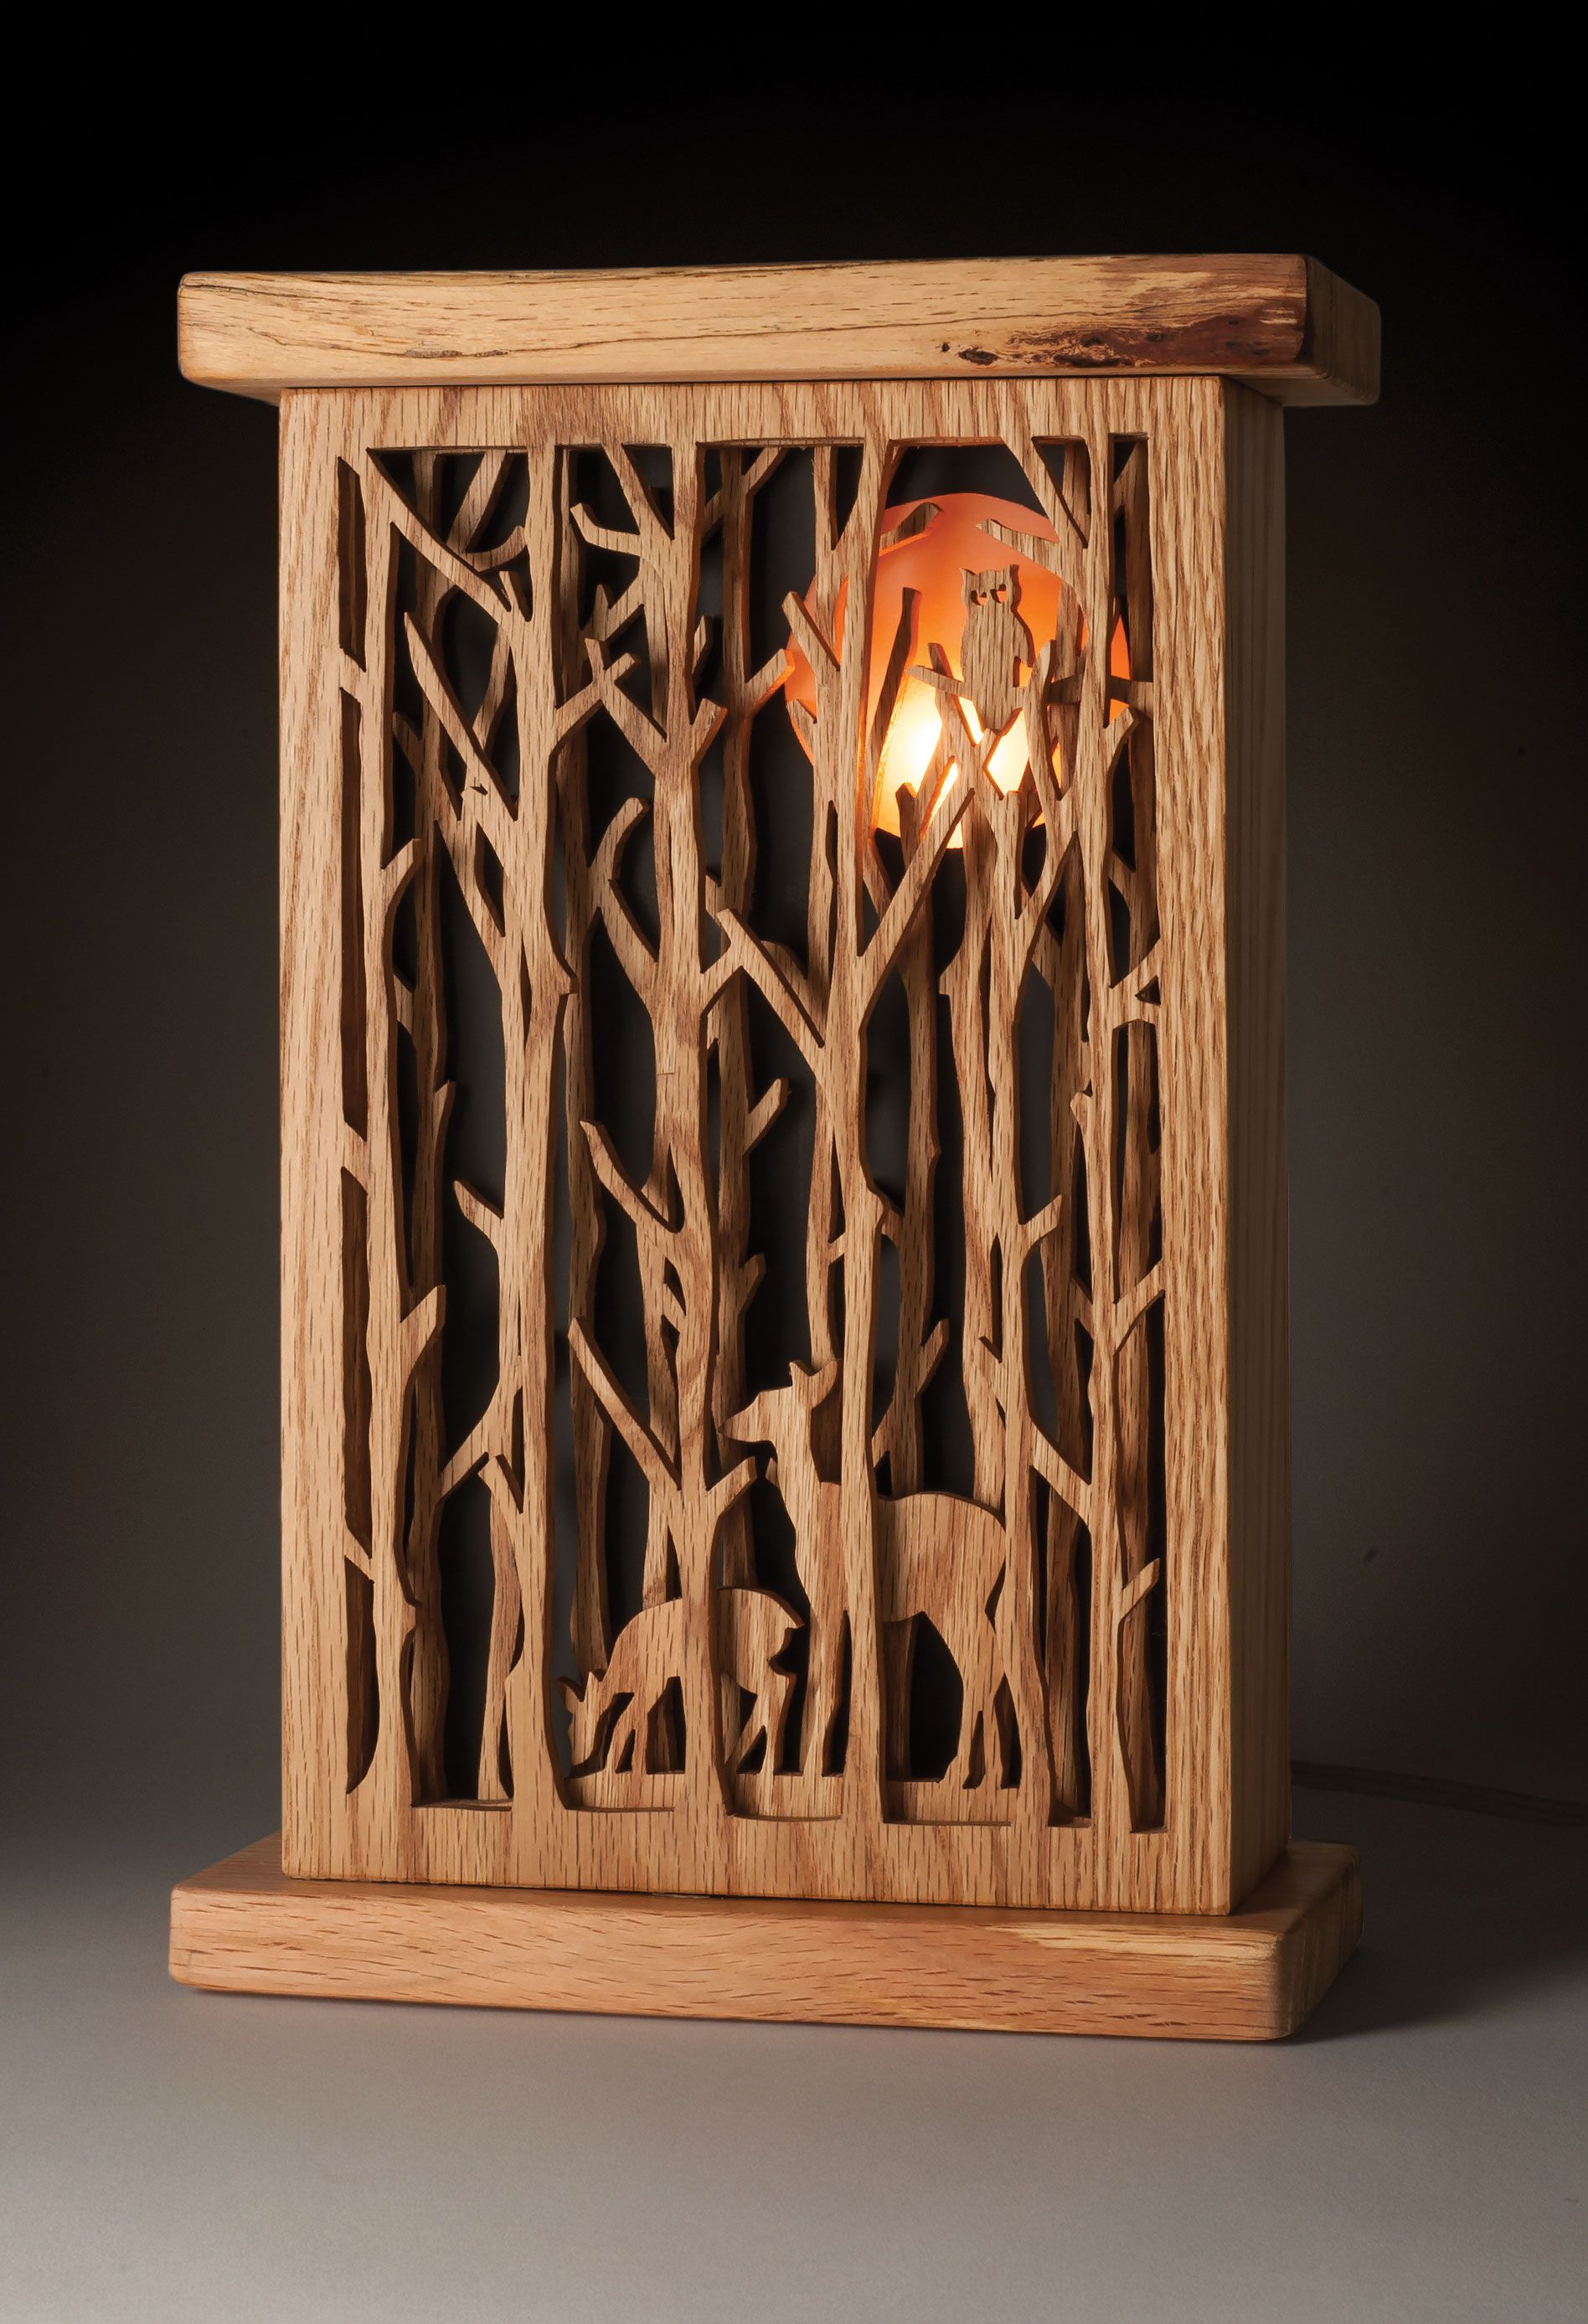 Enjoy the harvest moon all year long with this nightlight by Deb Nicholson. Learn more in Scroll Saw Woodworking & Crafts Fall 2015 (Issue 60) at http://scrollsawer.com/2015/07/15/scroll-saw-woodworking-crafts-fall-2015-issue-60-2/.